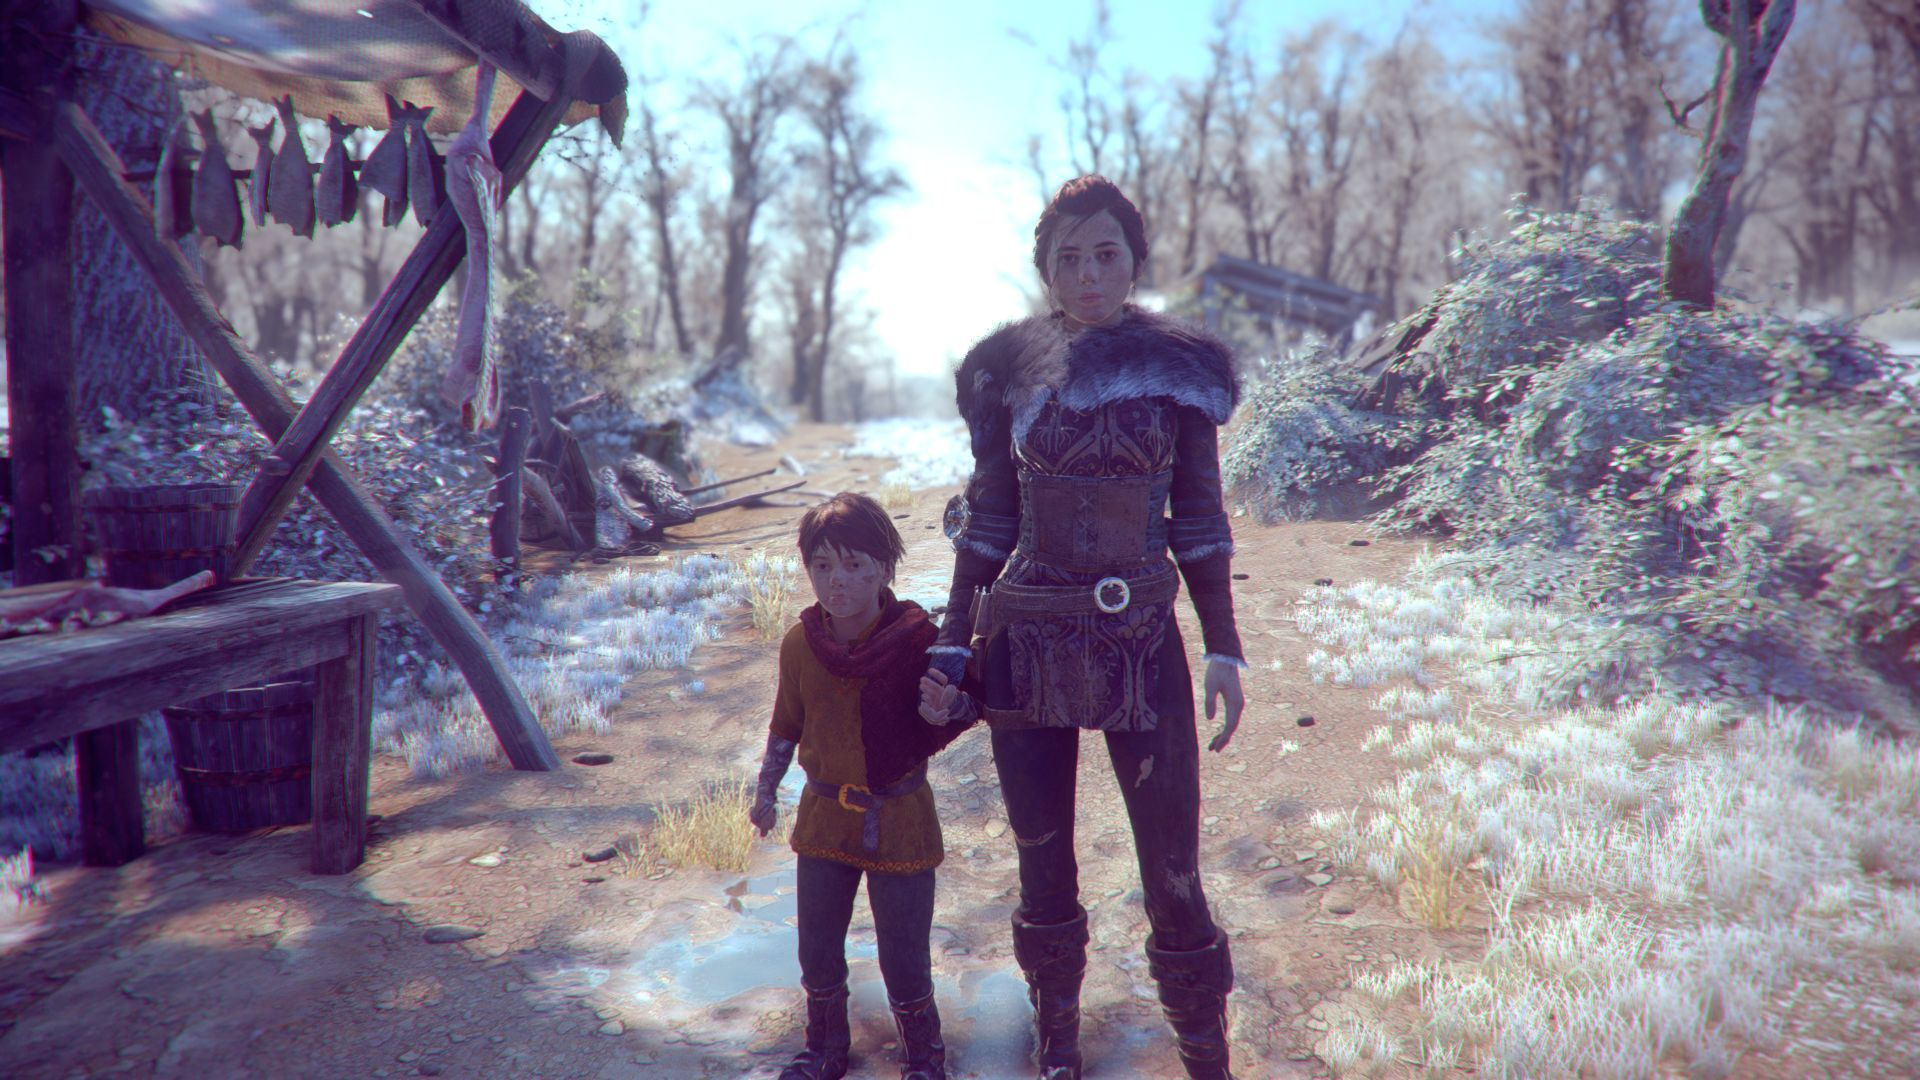 More About A Plague Tale: Innocence